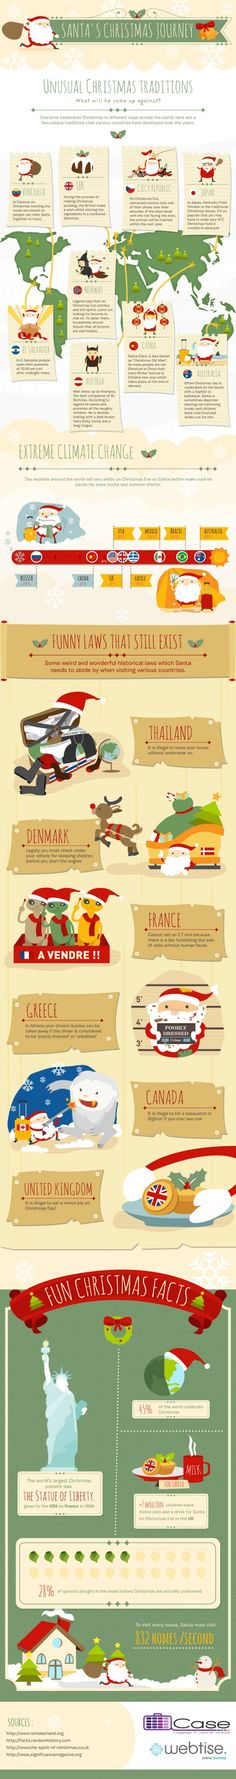 A fun Christmas infographic which includes unusual Christmas traditions, the climate change which Santa encounters, funny laws which Santa must abide by and fun Christmas facts.